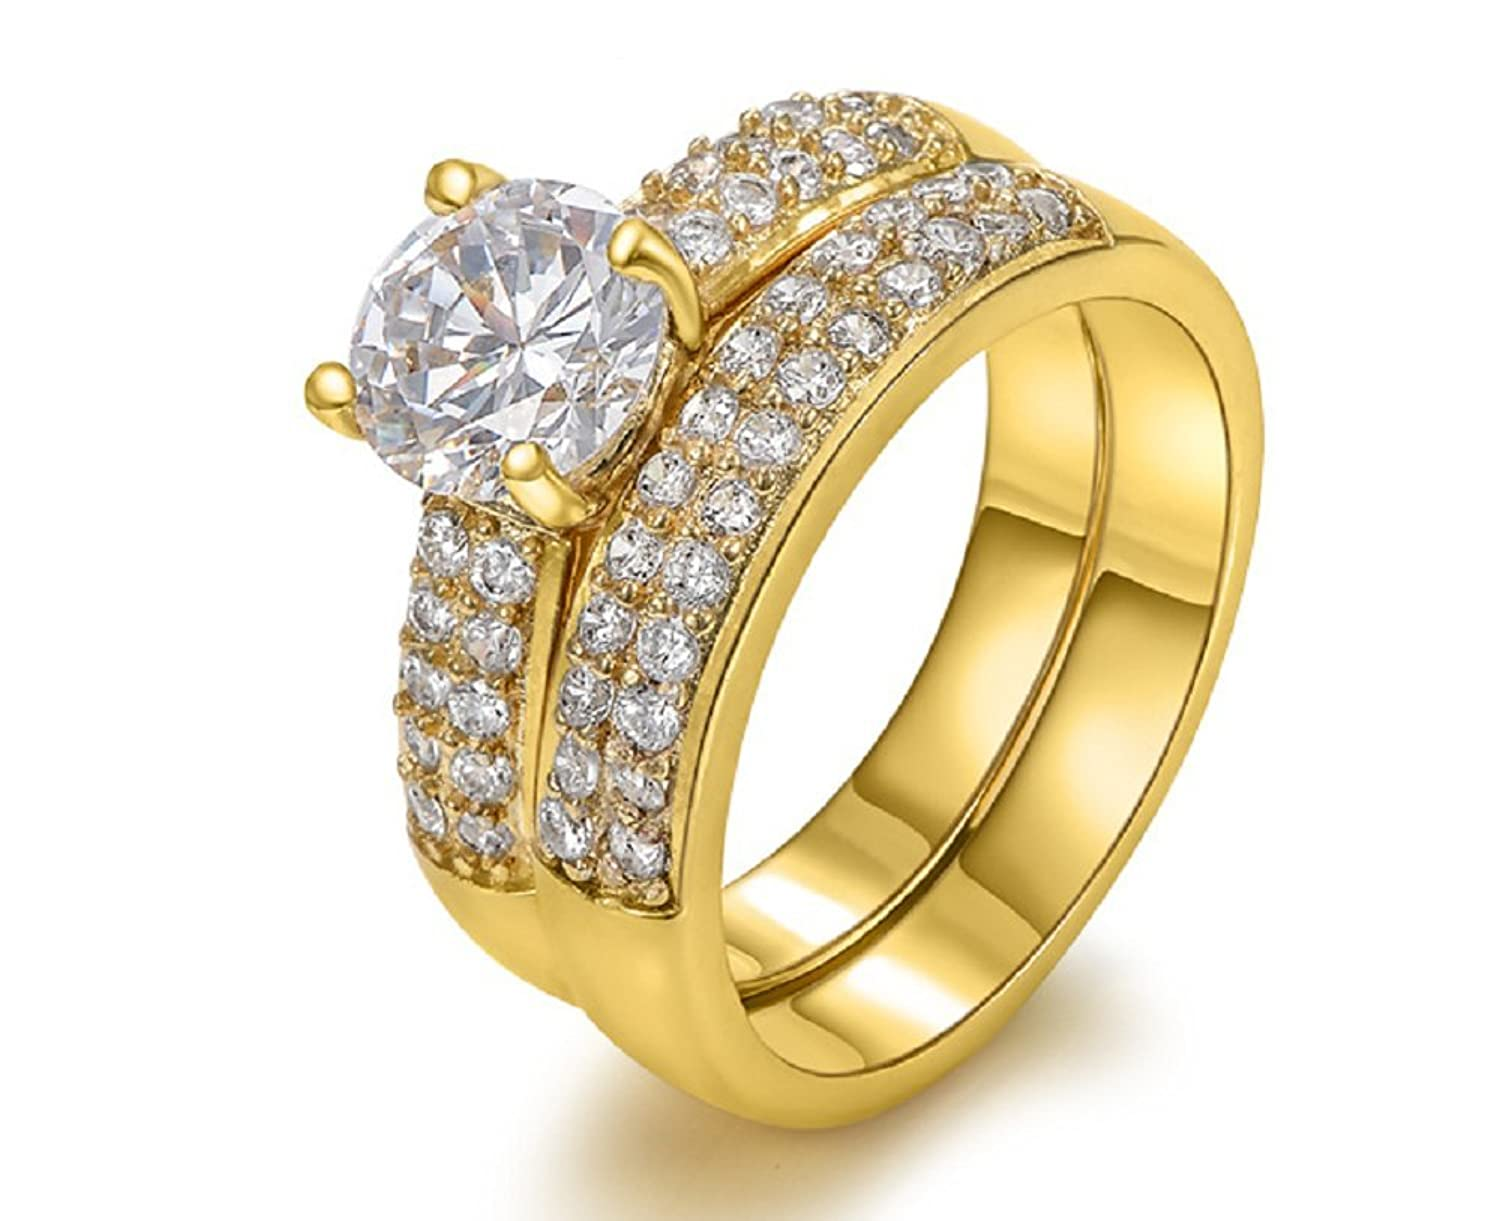 watch daily latest ring wear jewellery women designs collections gold simple rings